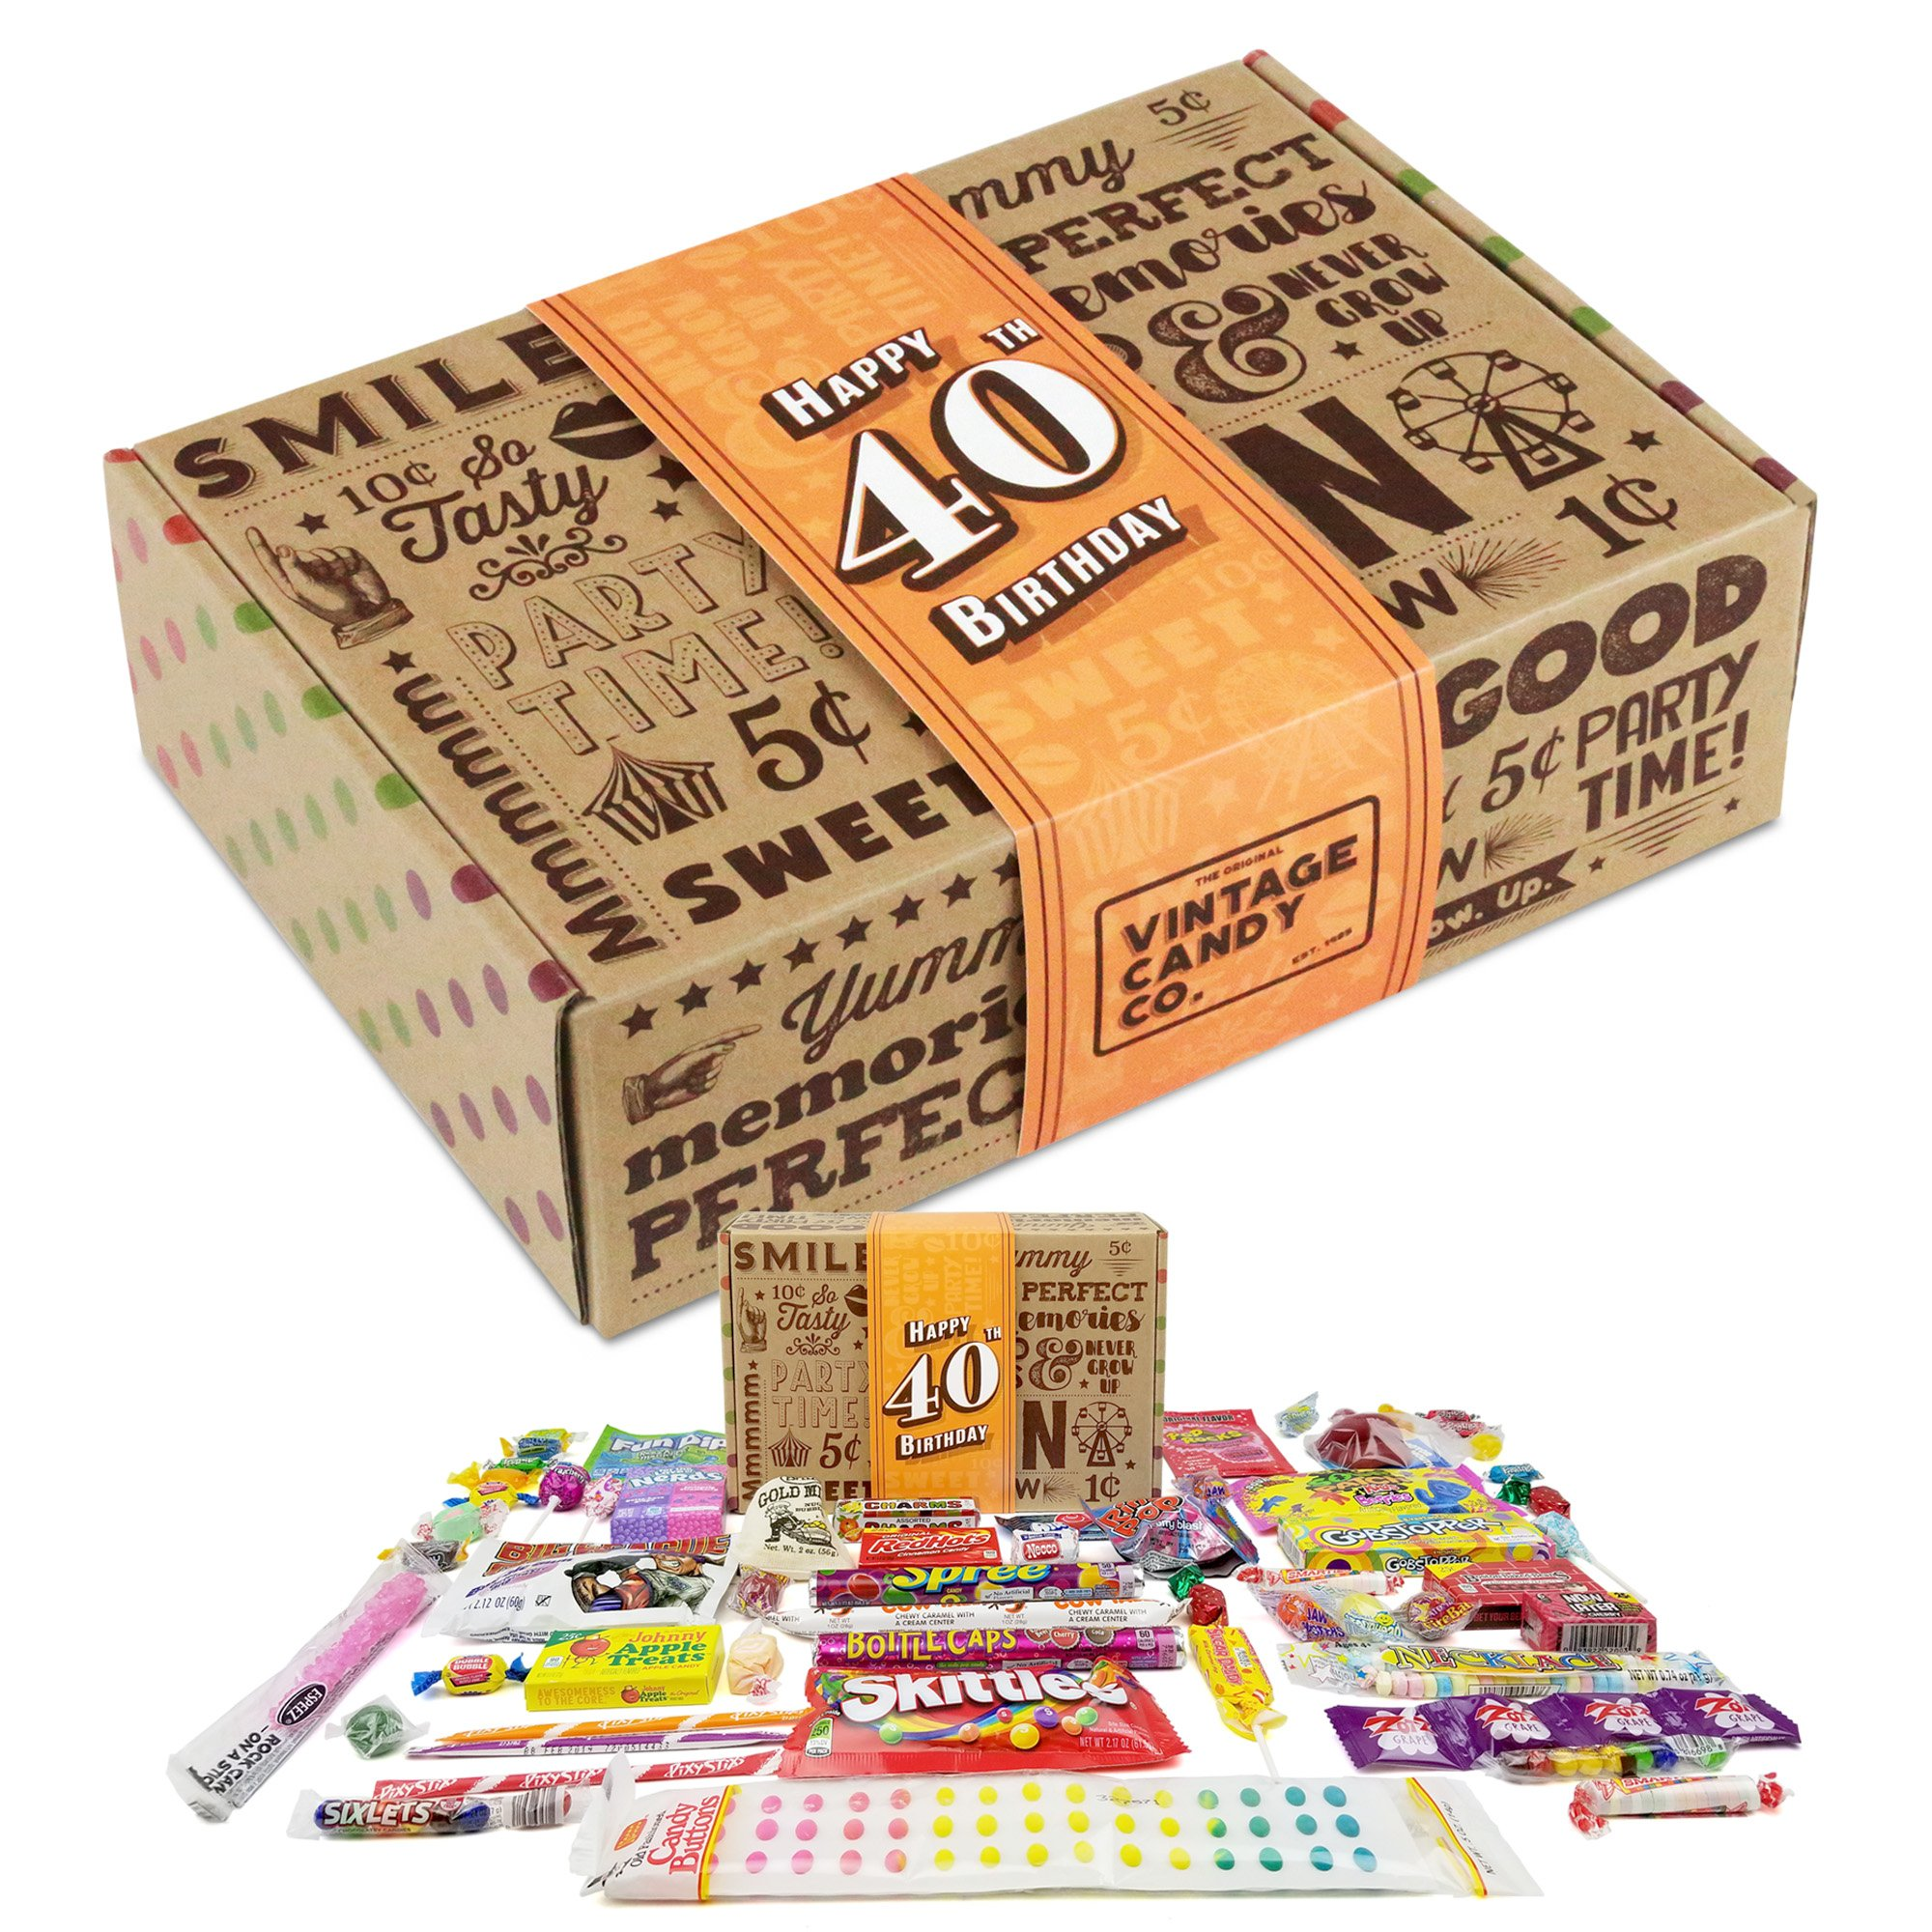 VINTAGE CANDY CO. 40TH BIRTHDAY RETRO CANDY GIFT BOX - 1979 Decade Childhood Nostalgic Candies - Fun Funny Gag Gift Basket - Milestone FORTIETH Birthday - PERFECT For Man Or Woman Turning 40 Years Old by Vintage Candy Co.